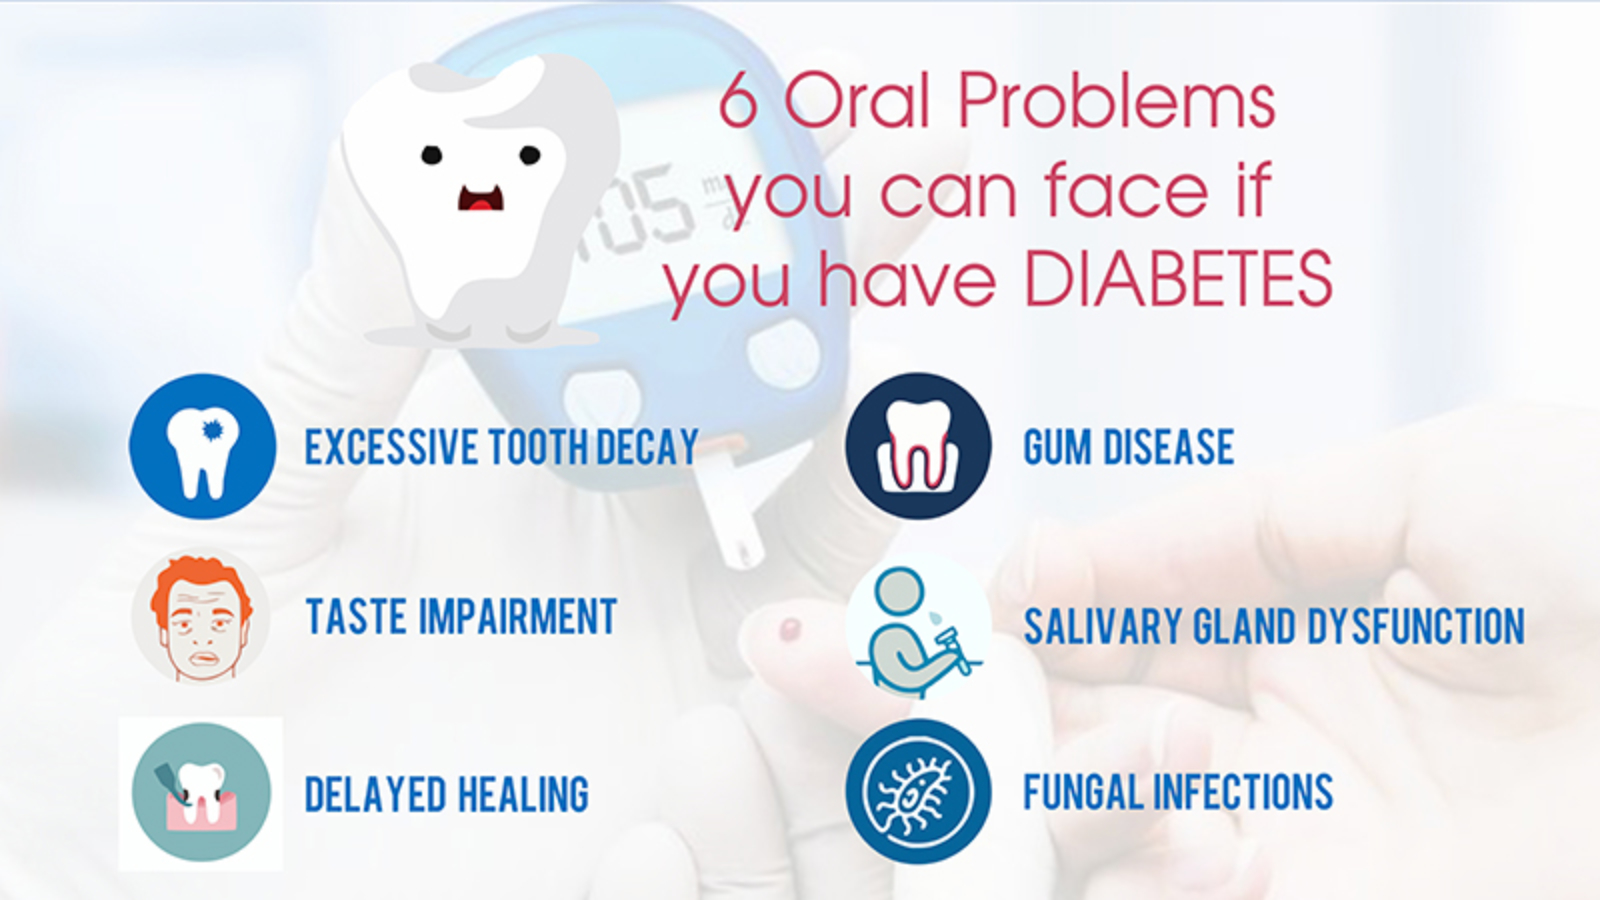 6 Oral Problems You Can Face If You Have Diabetes